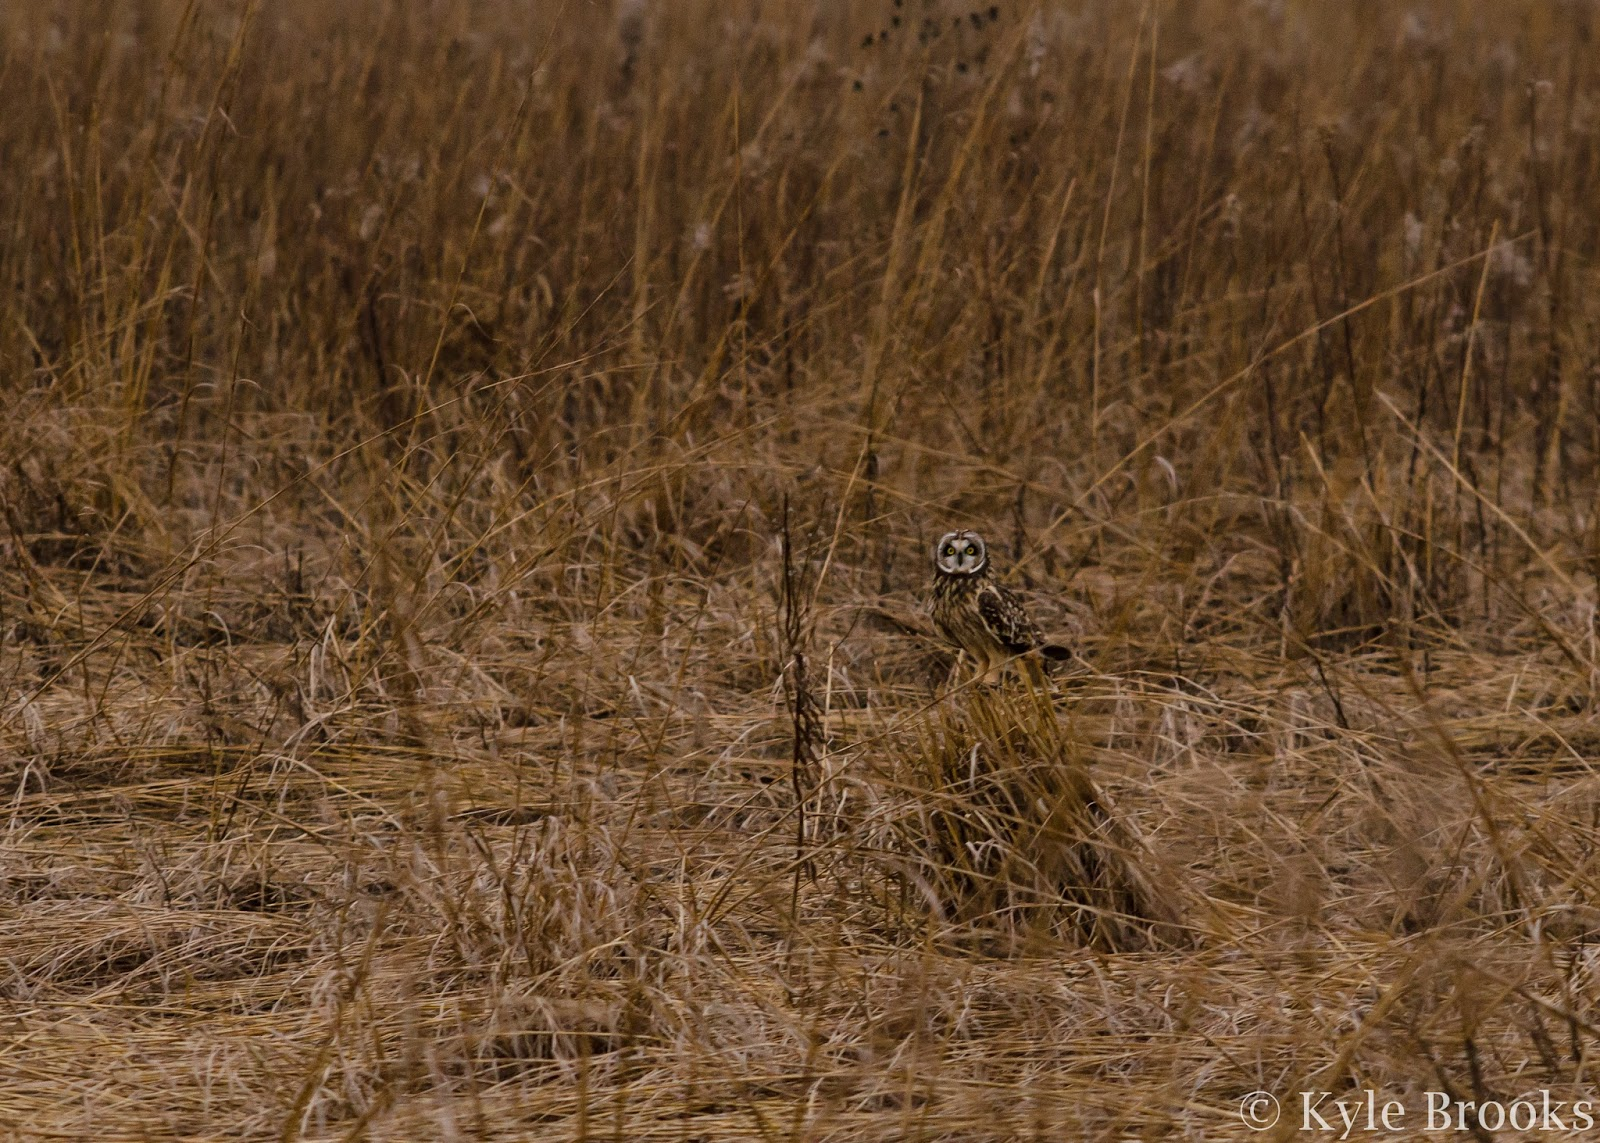 Short-Eared Owl in Field